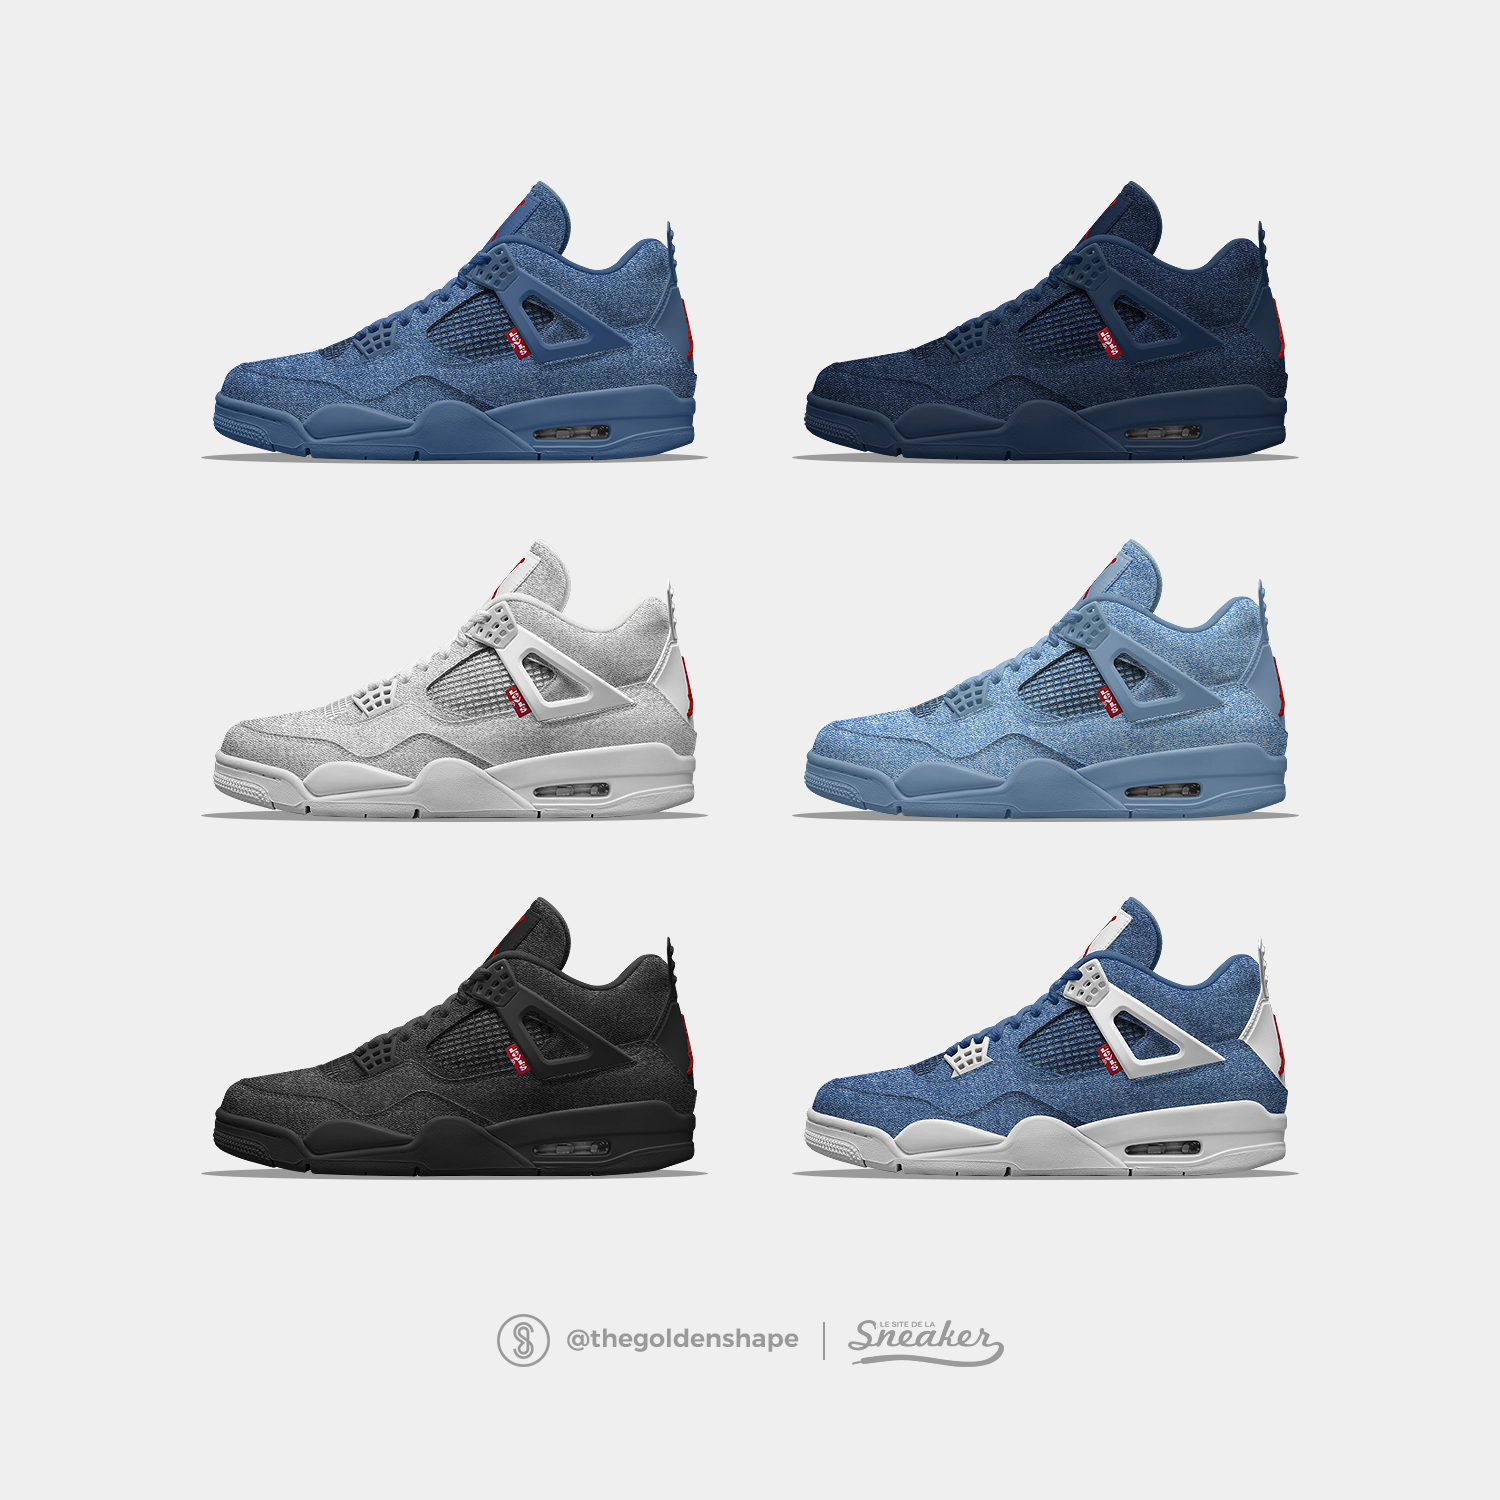 pretty nice 923e5 fe4b7 Levi s x Air Jordan 4 Denim Pack Jordan 4, Jordan Shoes, Jordan Outfits,